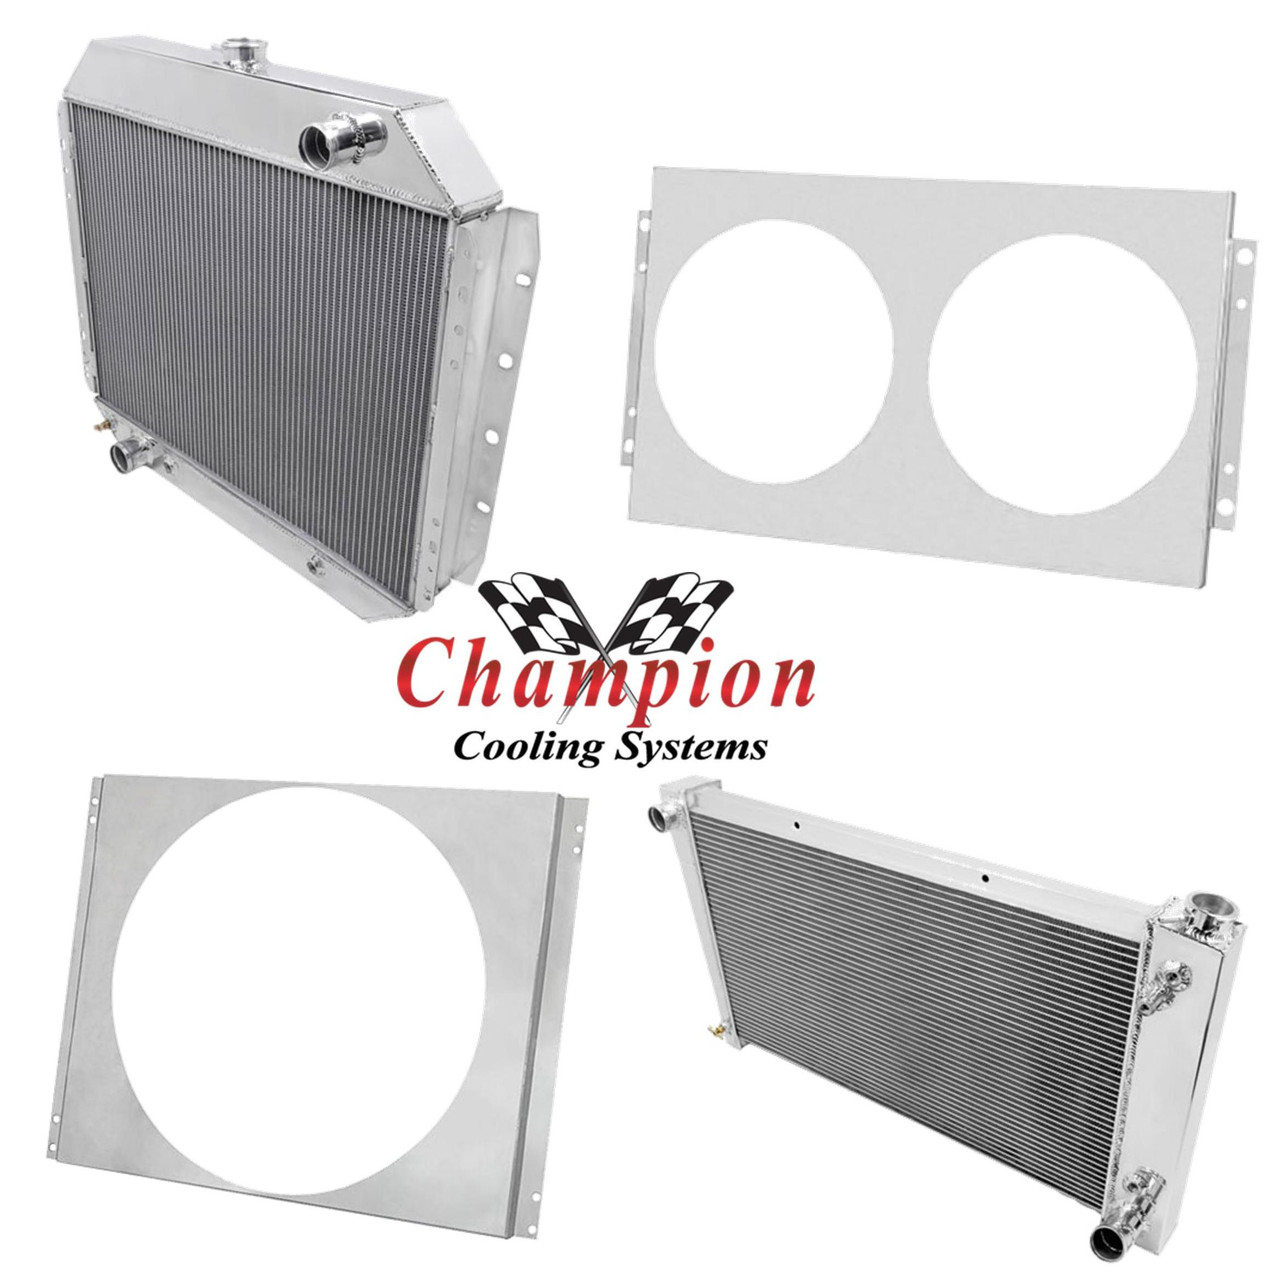 "3 Row Perf Champion Radiator W// 16/"" Fan for 1955-1957 Chevrolet Cars V8 Engine"